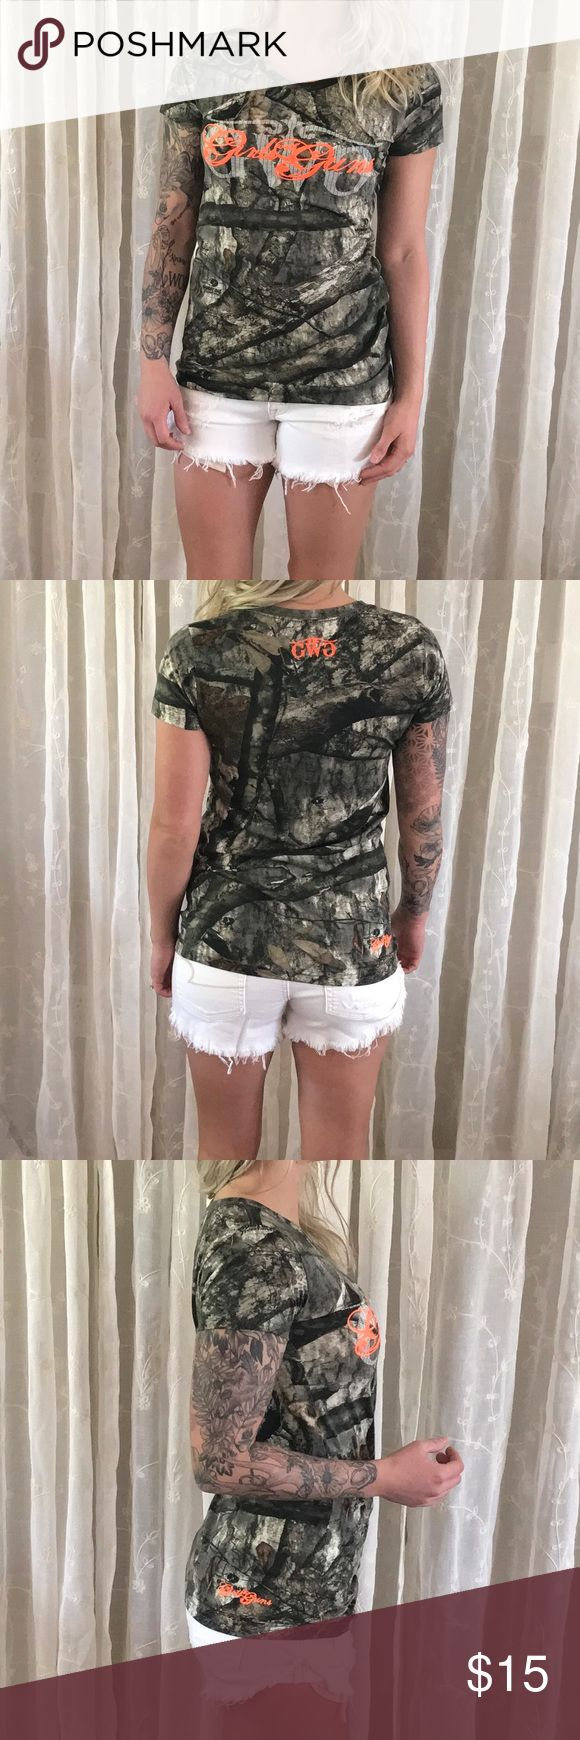 Girls with Guns Camo Tee Shirt Girls with guns |GWG| camouflage tee shirt. Scoop neck. Size small. Camo print is 'Mossy Oak Treestand'. Worn once, in great condition. Girls with Guns Tops Tees - Short Sleeve